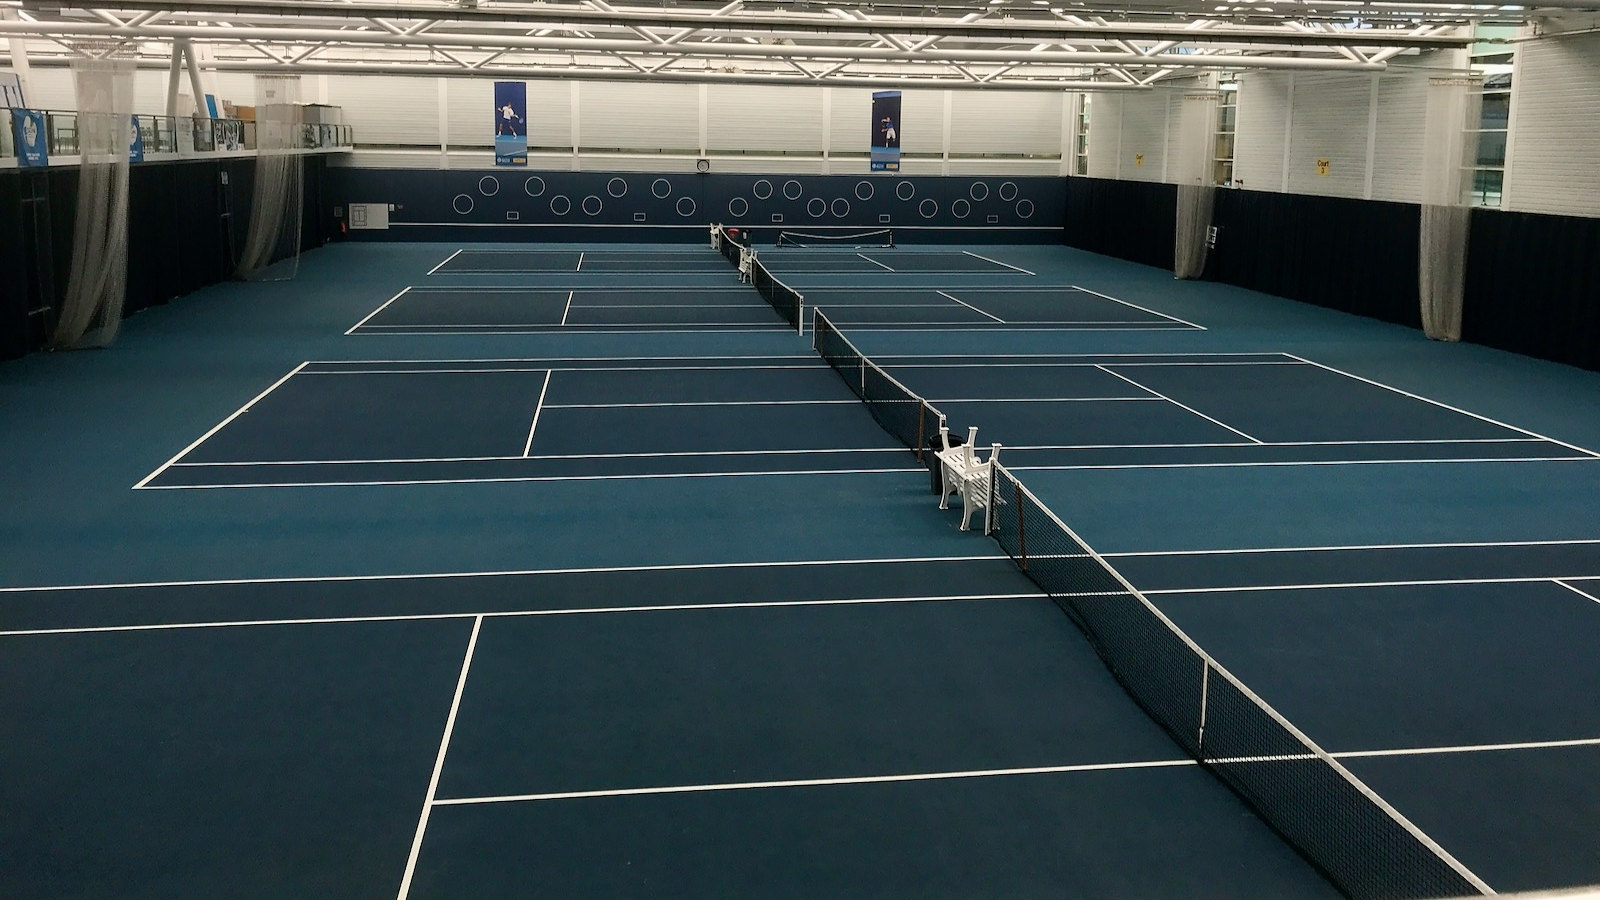 The indoor tennis courts at the Team Bath Sports Training Village